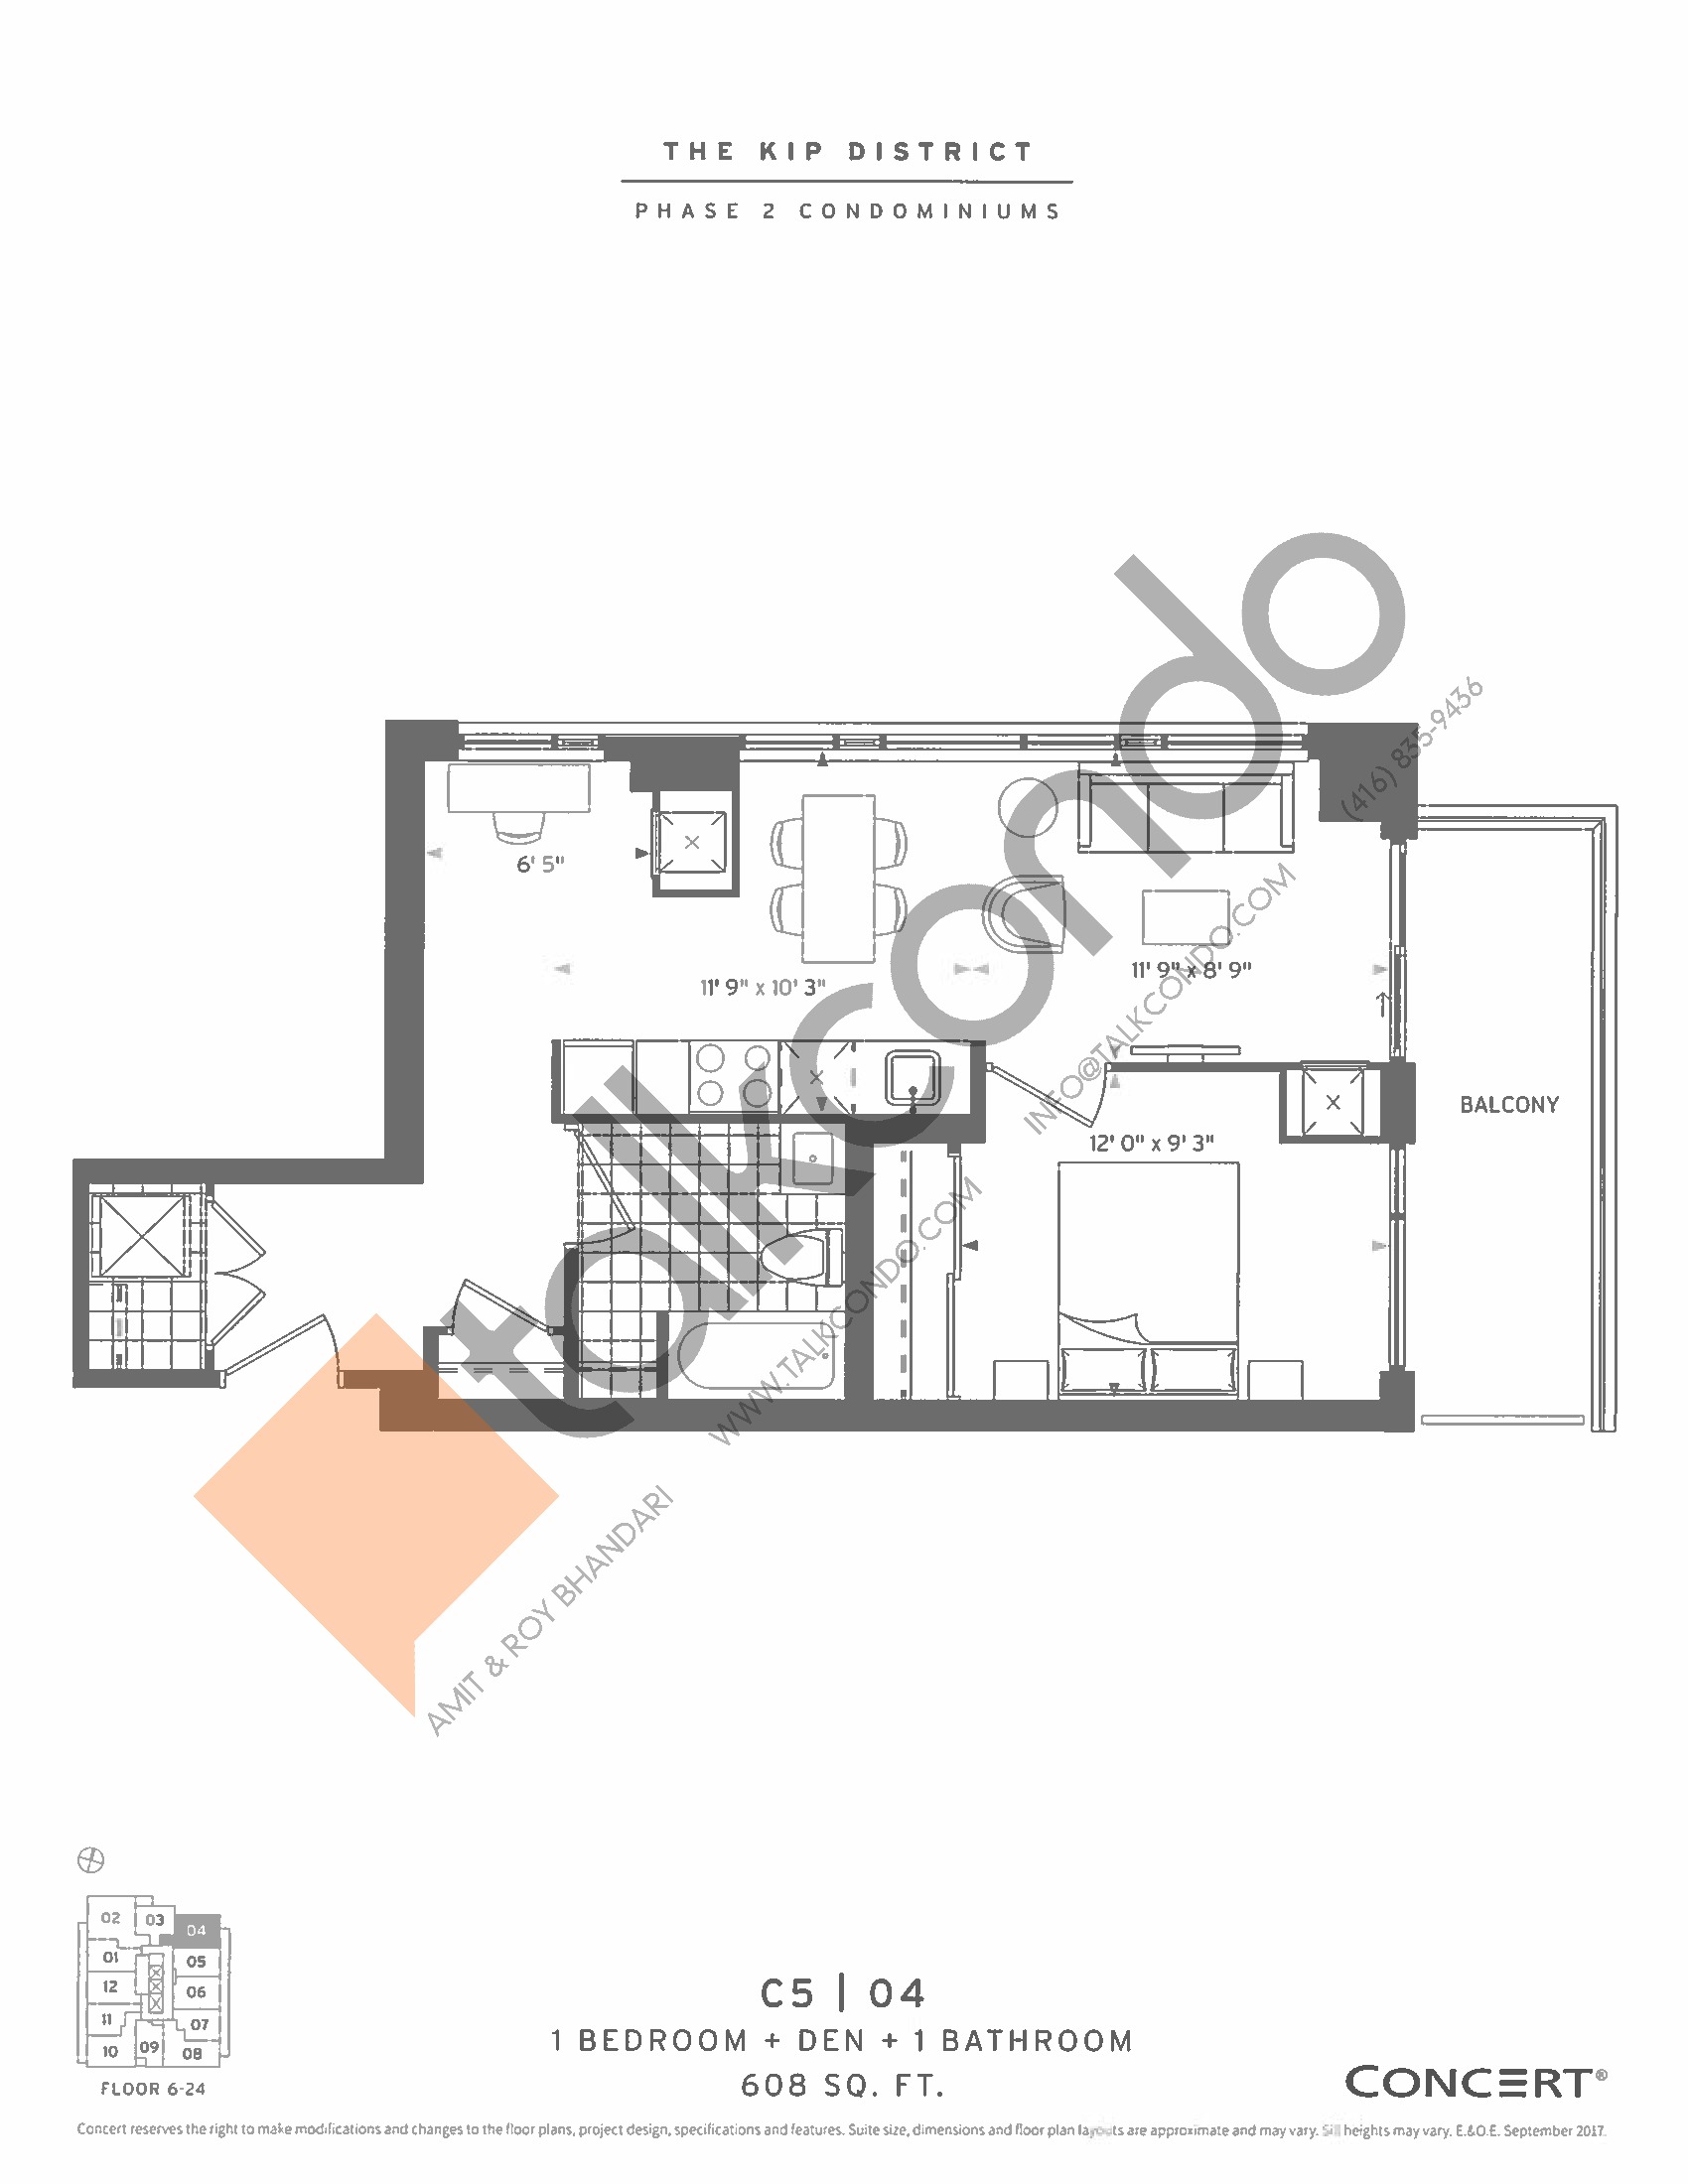 C5 | 04 Floor Plan at The Kip District Phase 2 Condos - 608 sq.ft